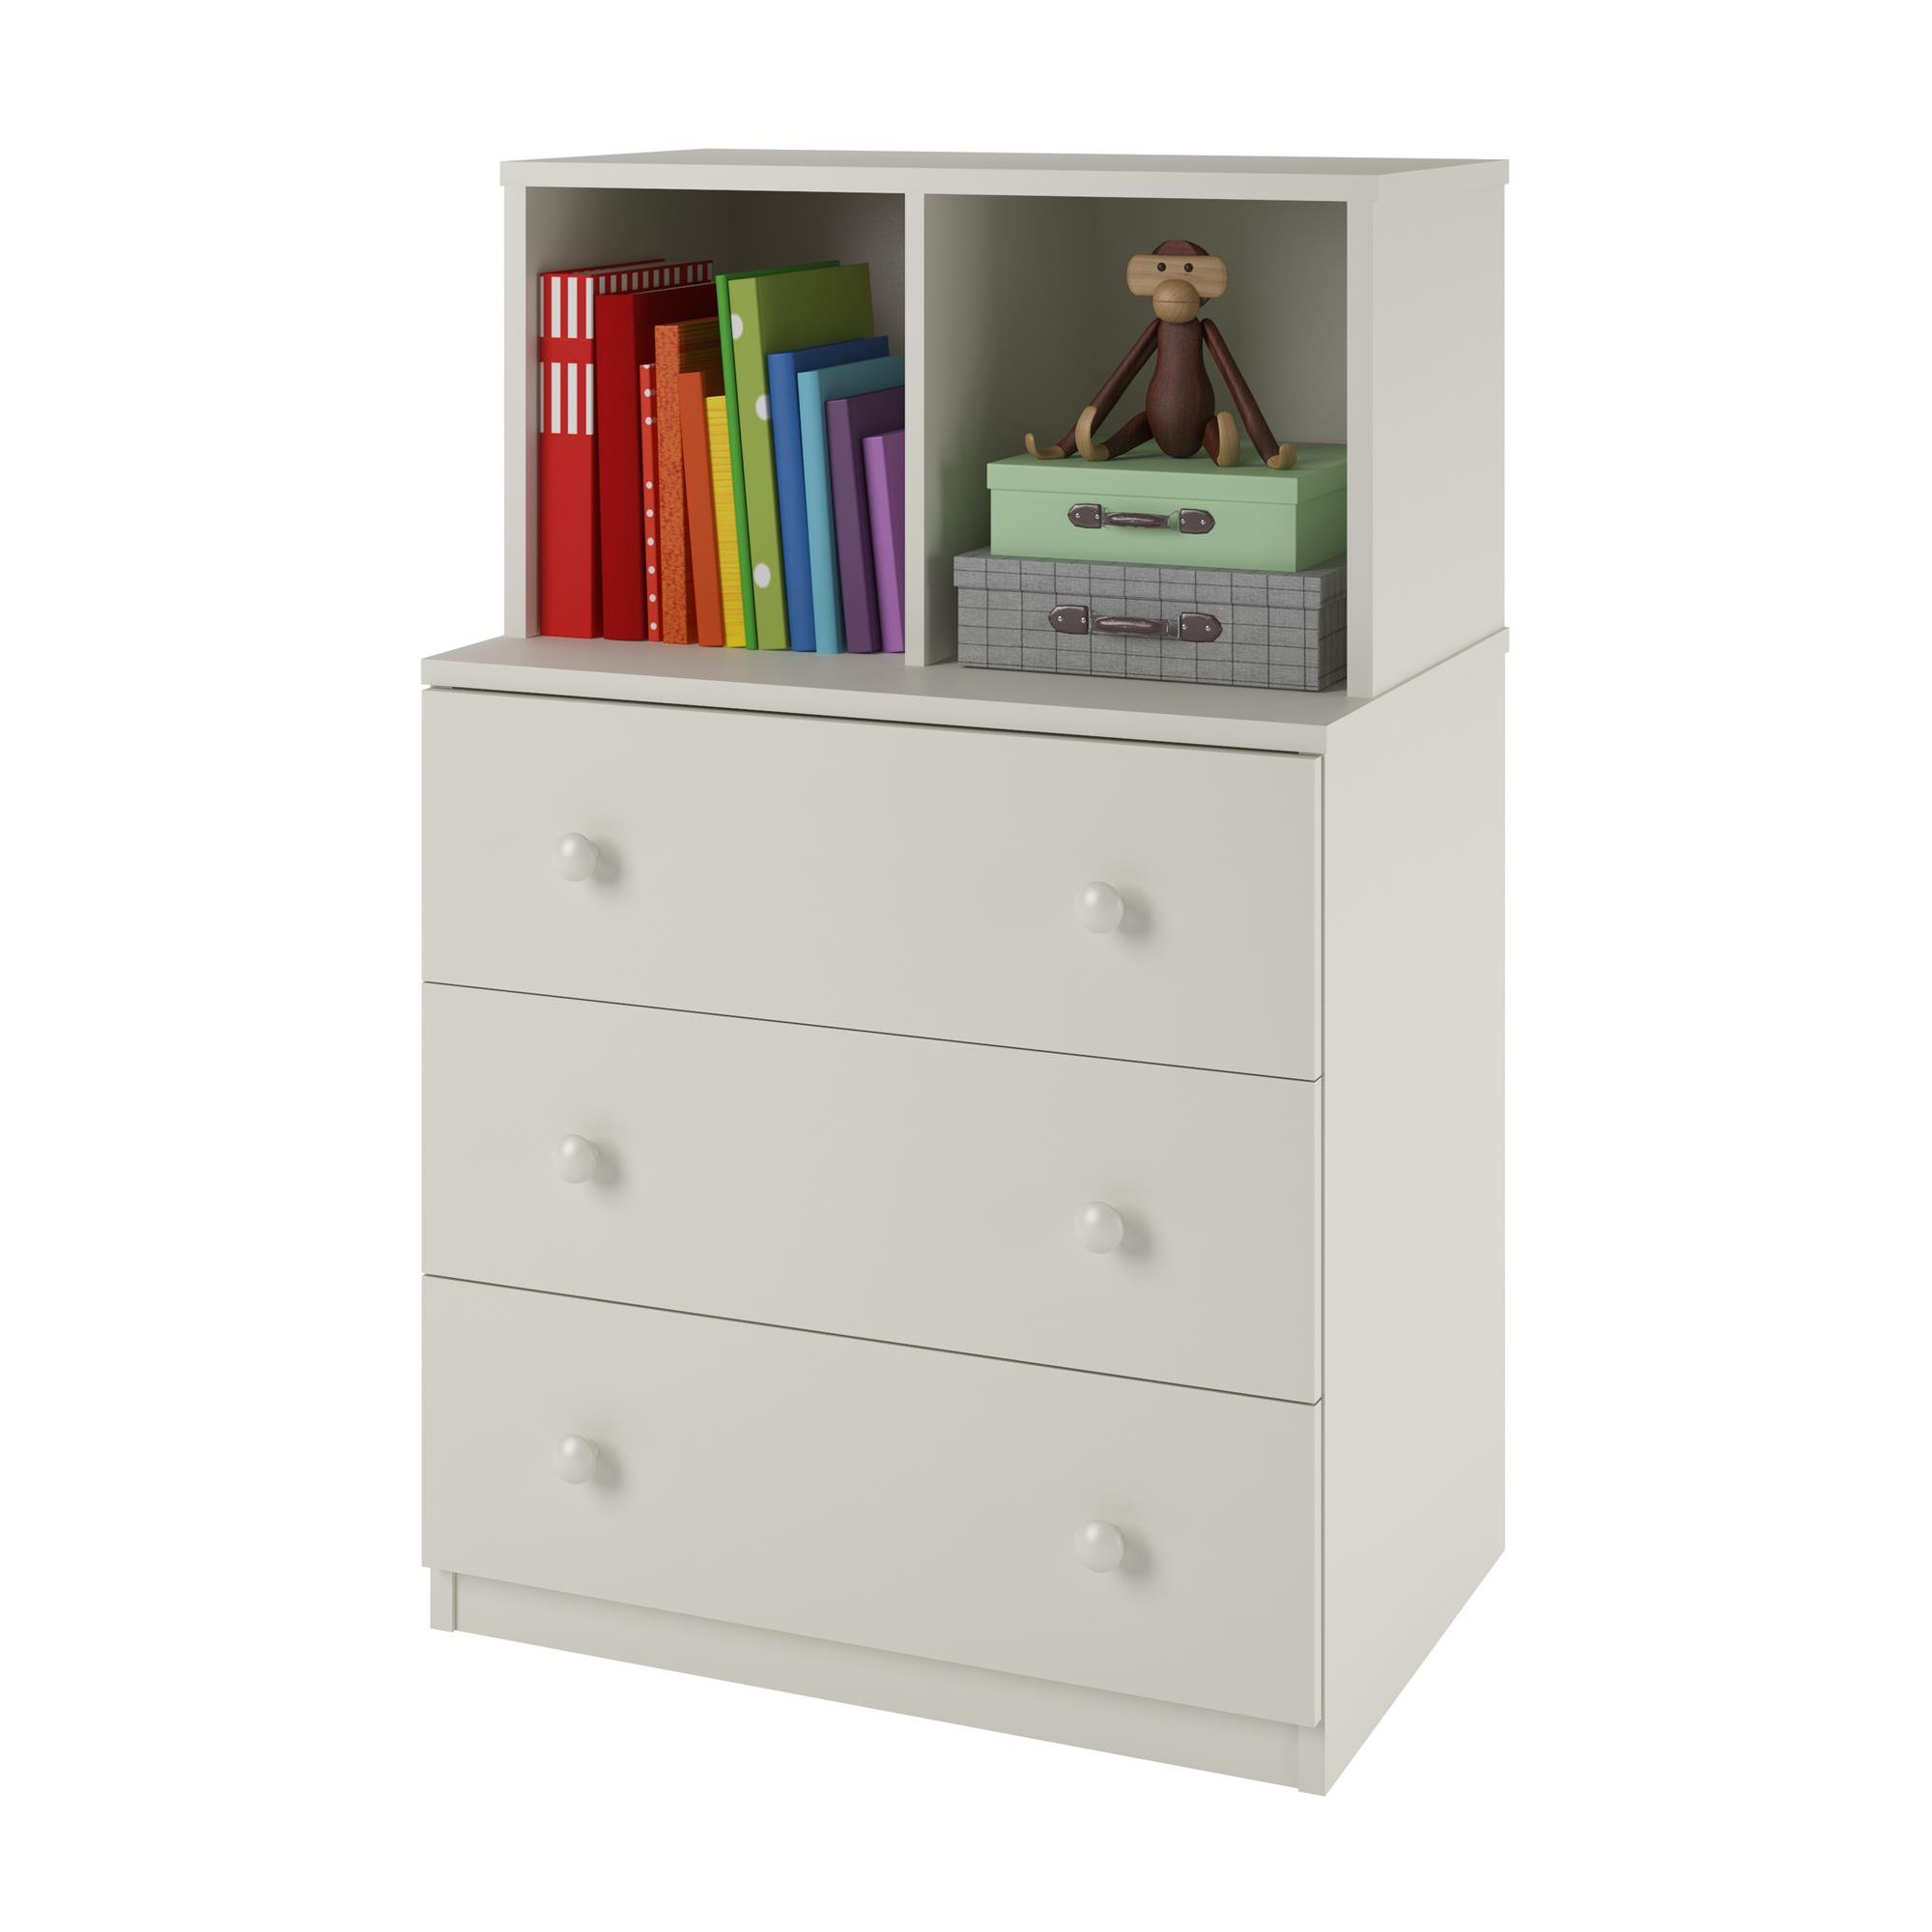 Ameriwood Home Skyler 3 Drawer Dresser with Cubbies, White by Ameriwood Home (Image #2)